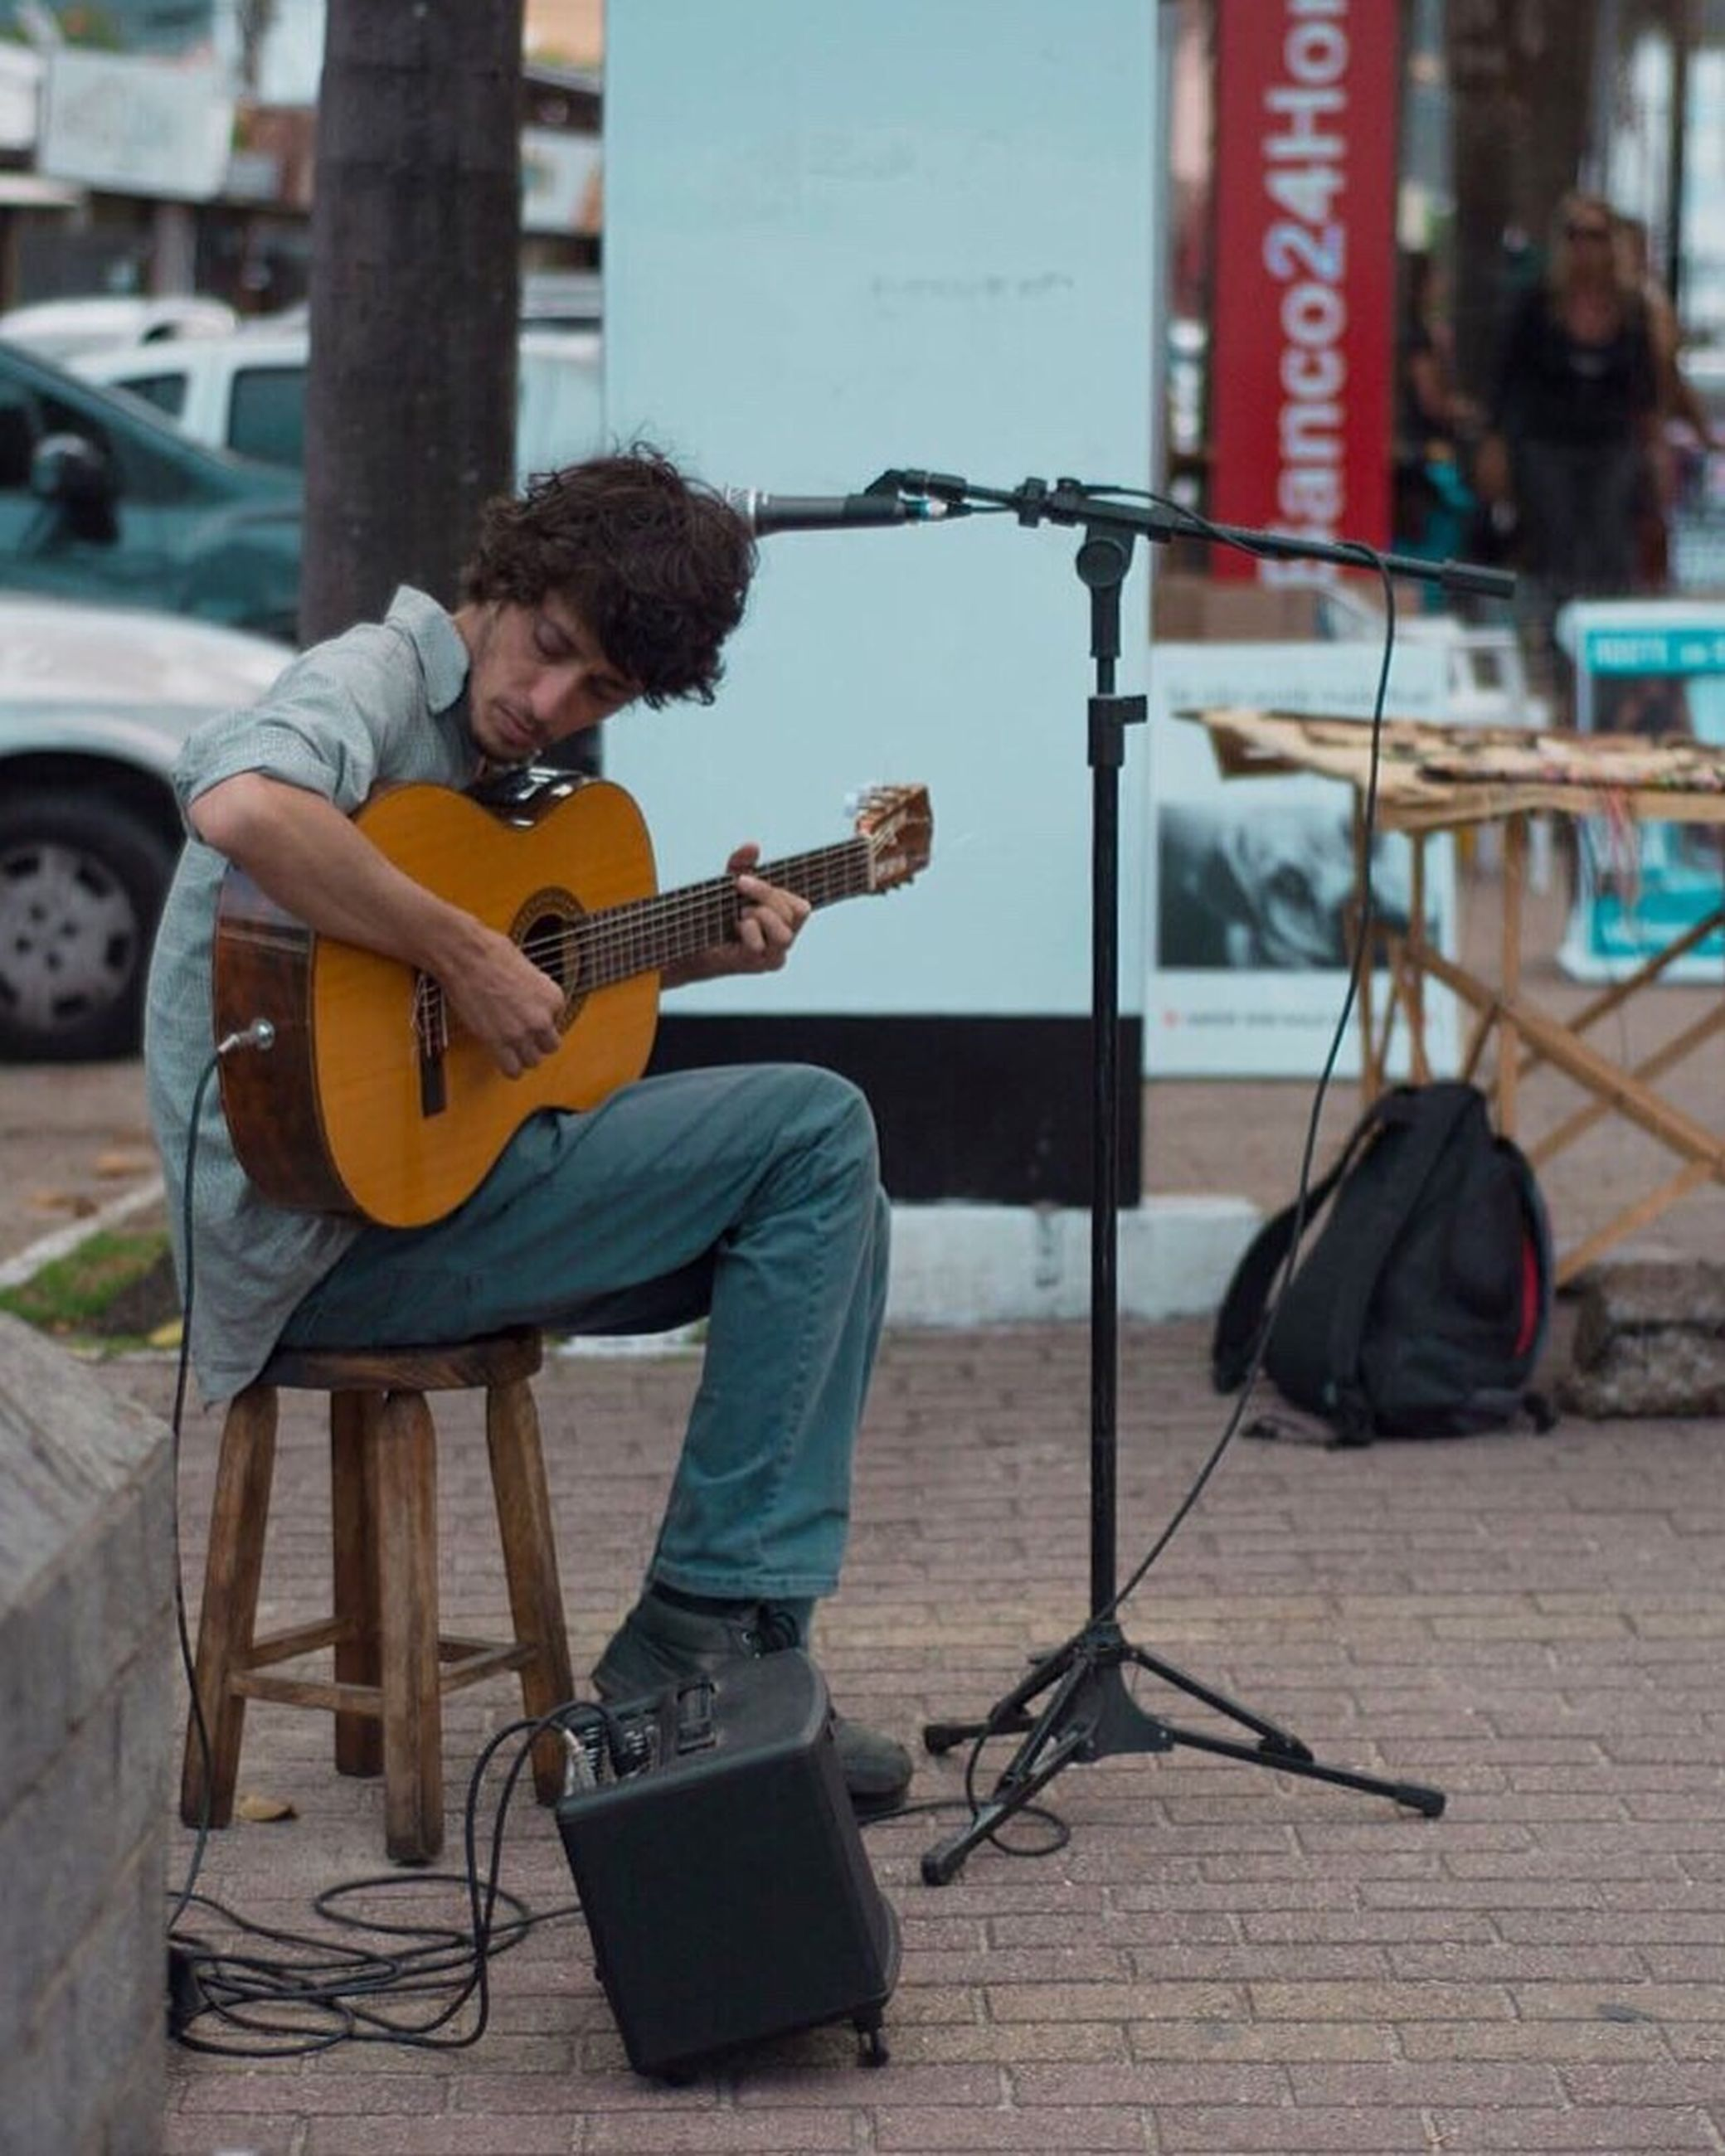 only men, one young man only, music, guitar, plucking an instrument, adults only, one man only, one person, sitting, lifestyles, guitarist, young adult, casual clothing, musical instrument, full length, musician, people, leisure activity, playing, adult, arts culture and entertainment, curly hair, domestic life, men, indoors, performance, day